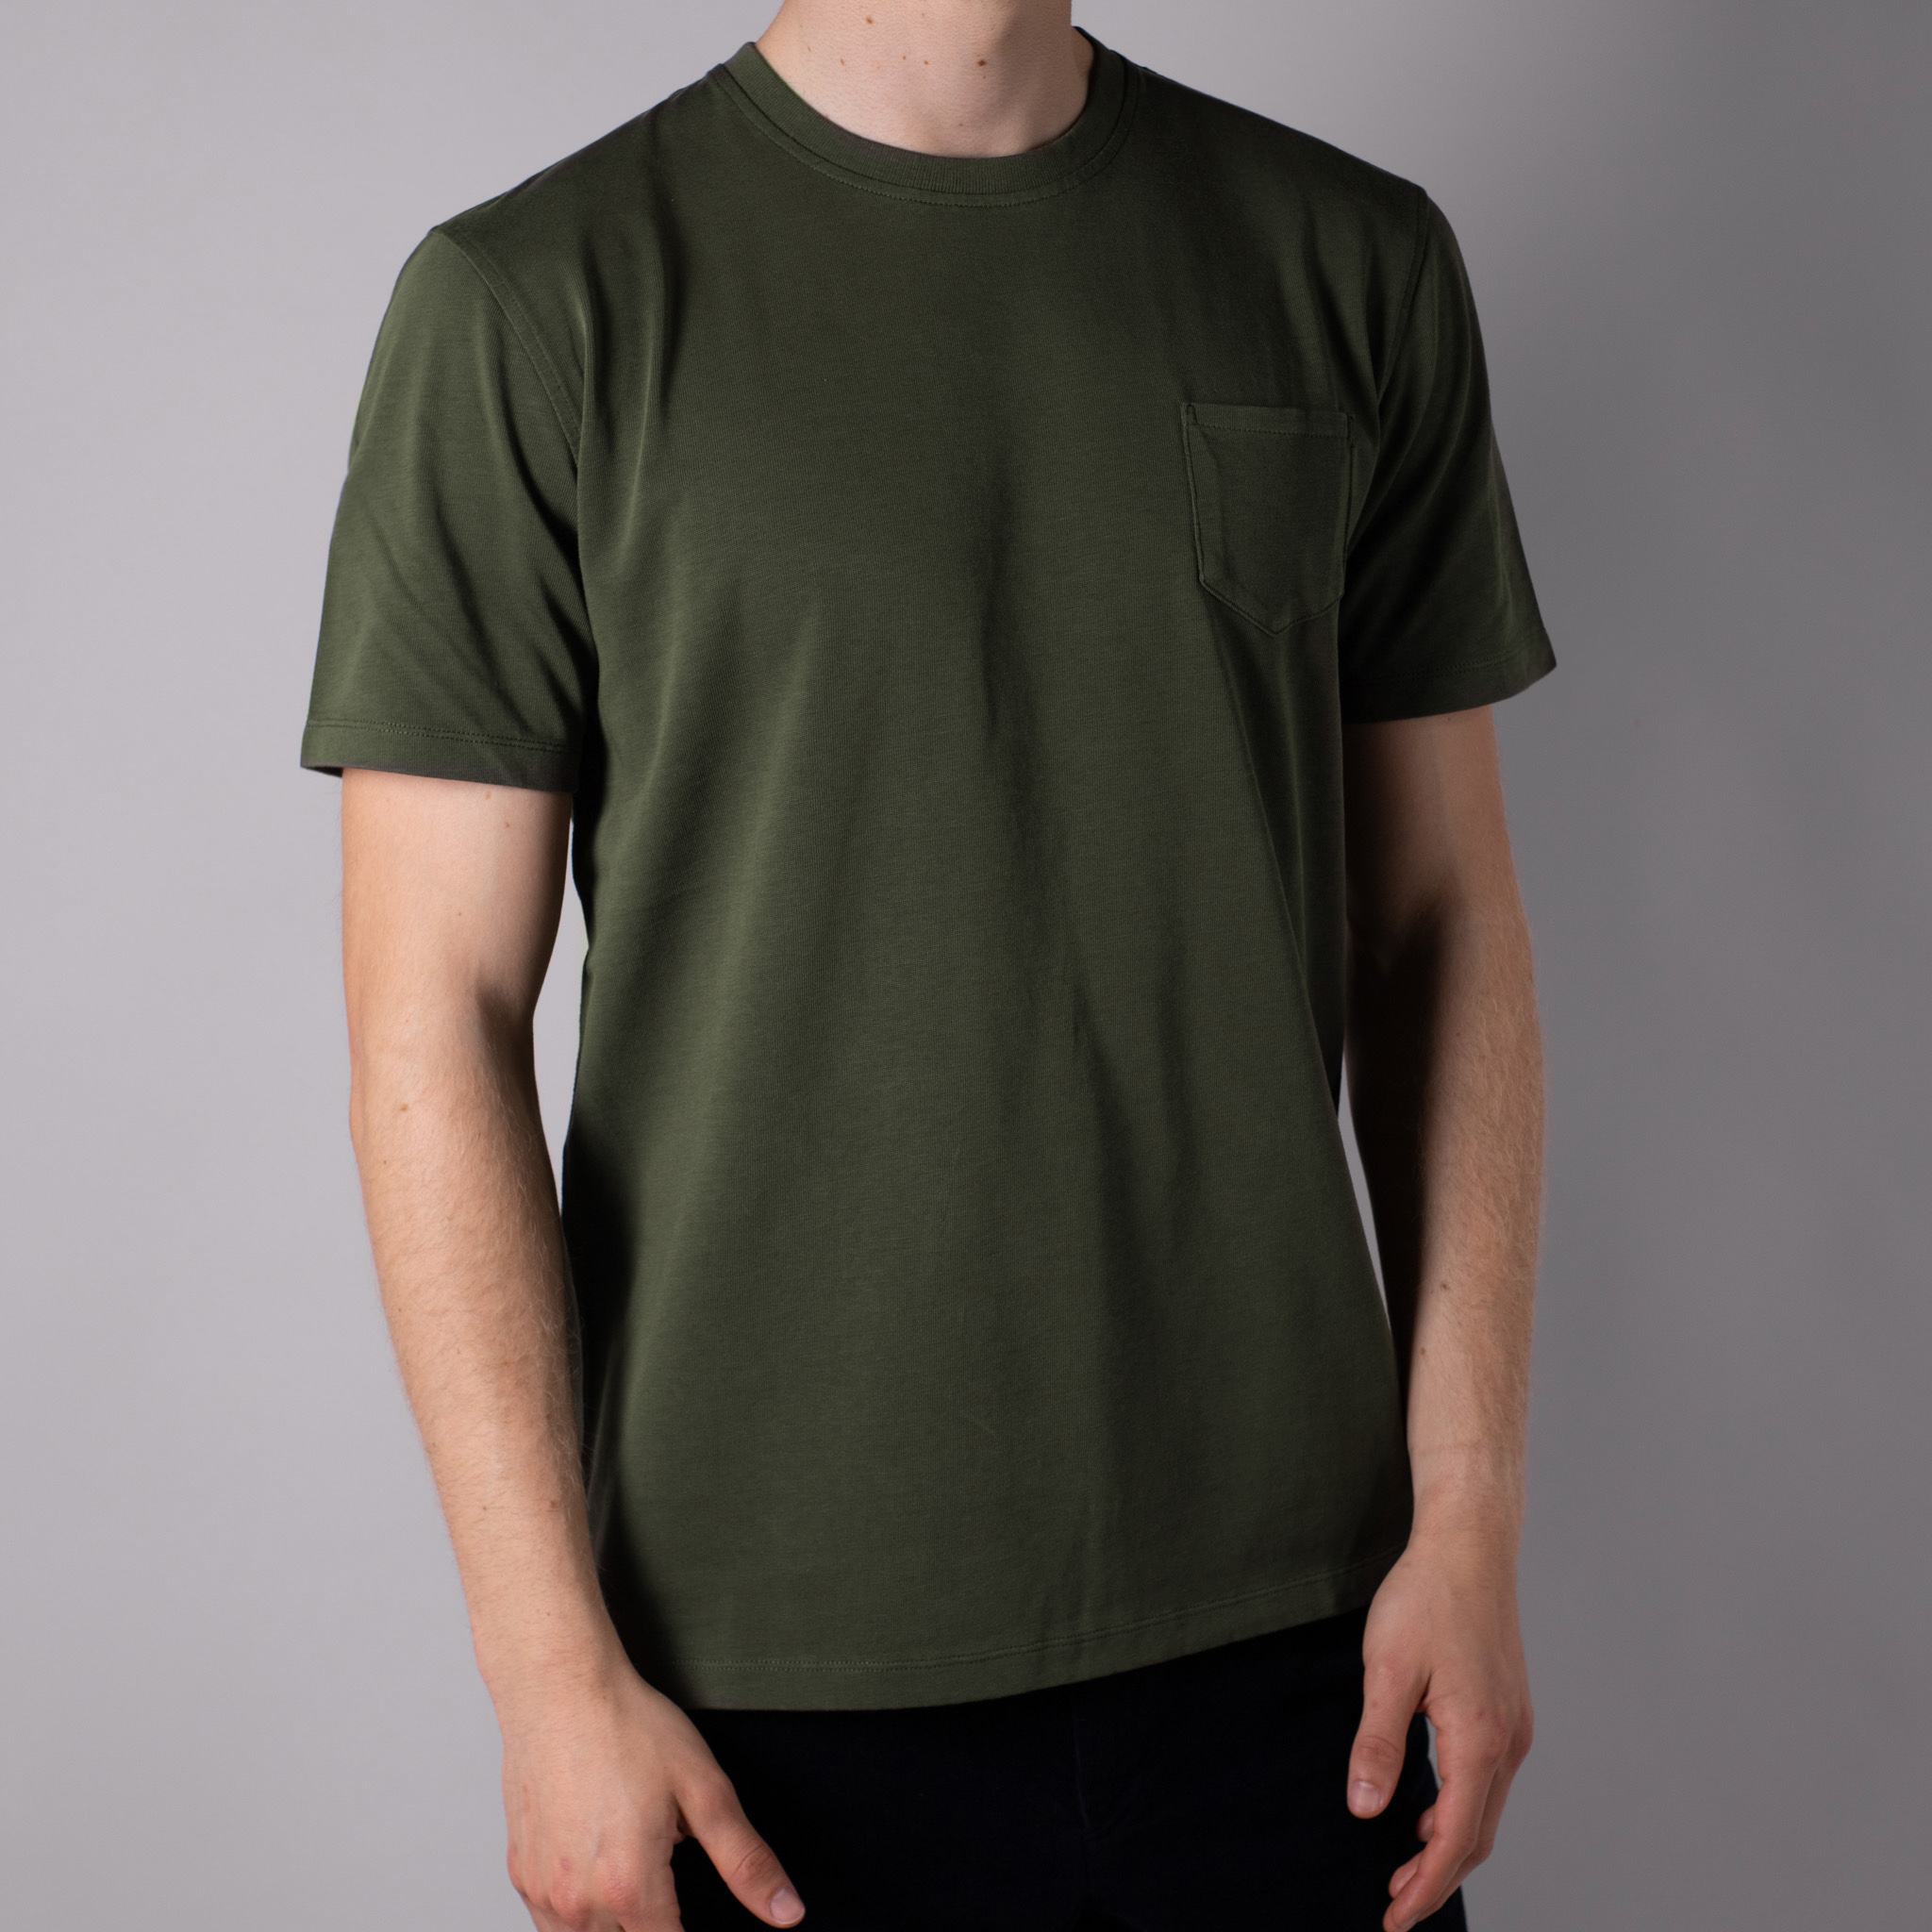 T-SHIRT-02-·-03-VERDE-The-Seëlk 1